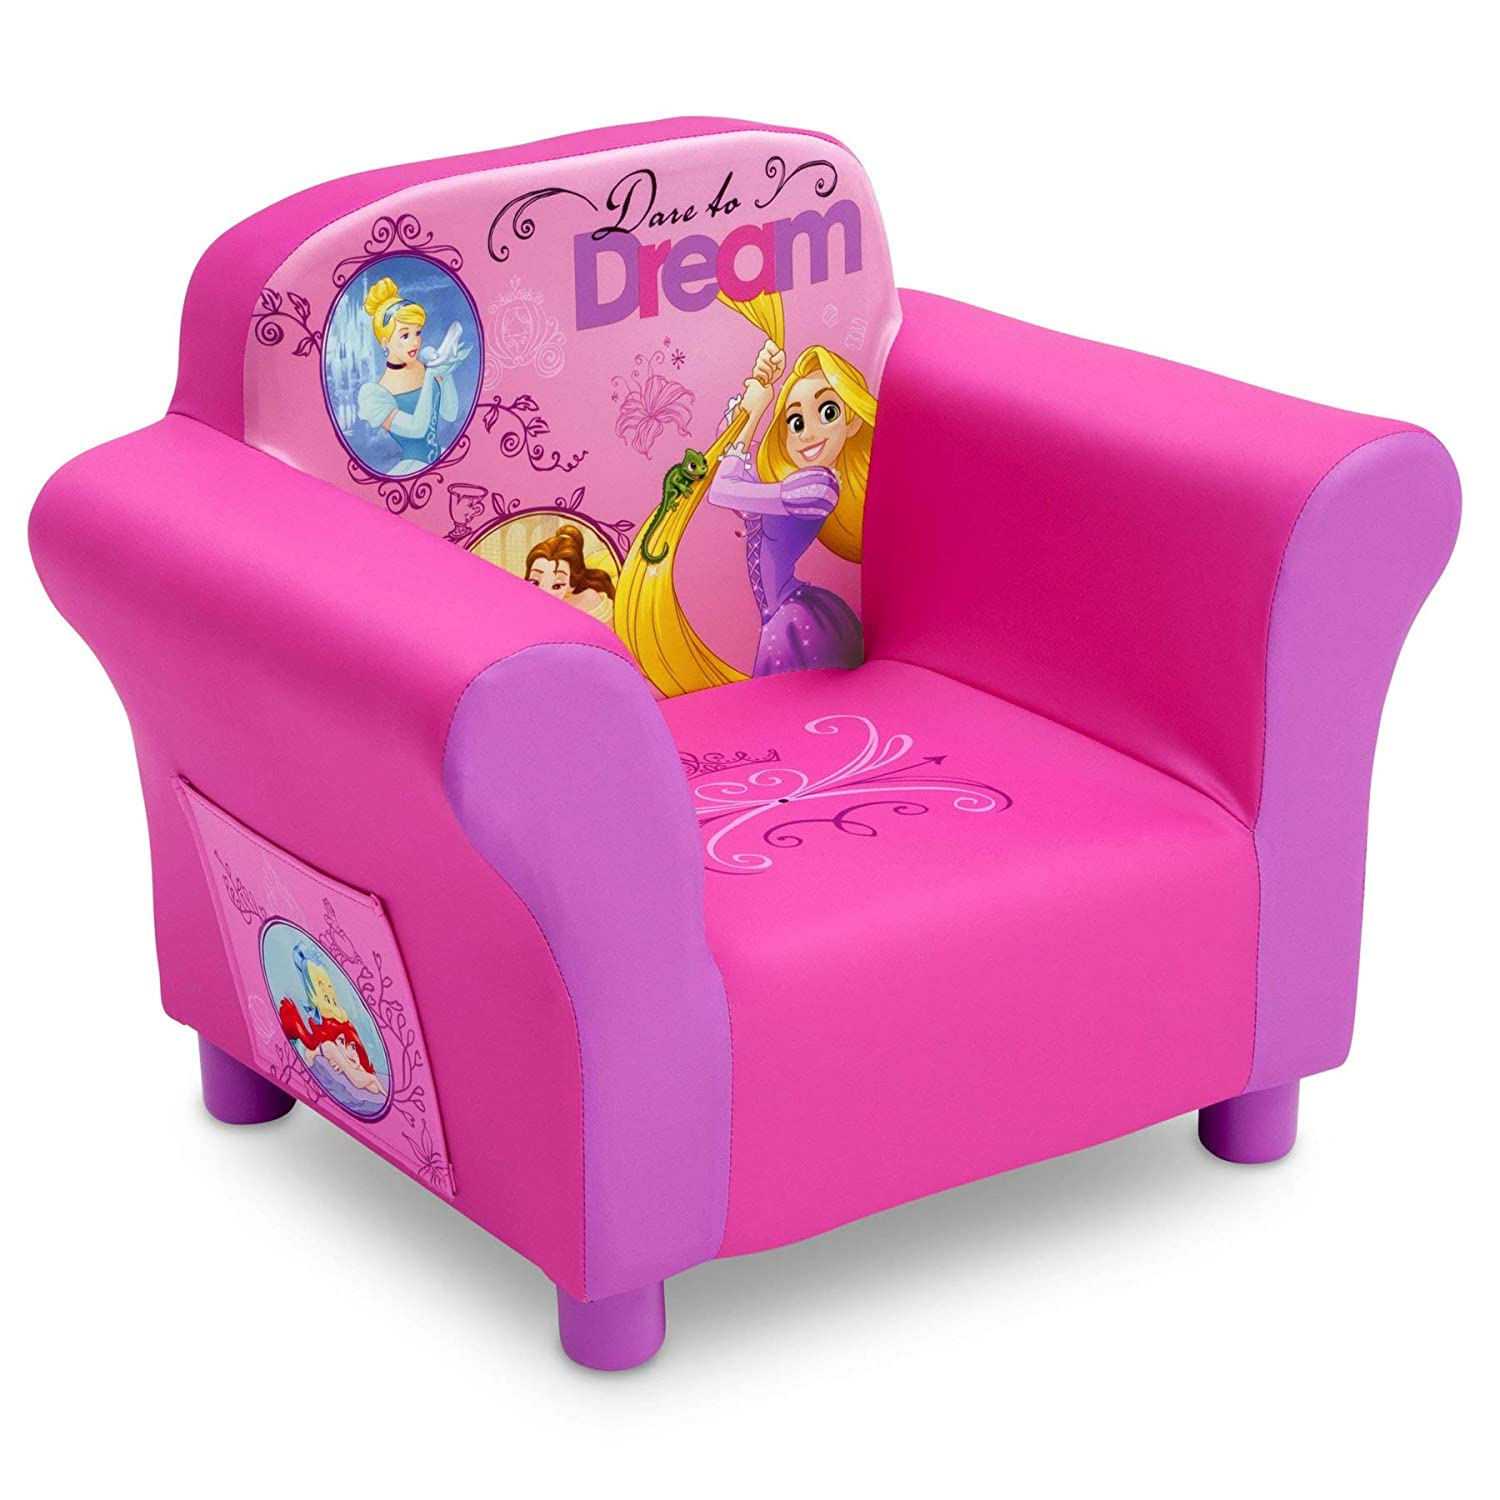 The 10 Best Princess Chair For Toddlers You Should Check Out (2020) 4